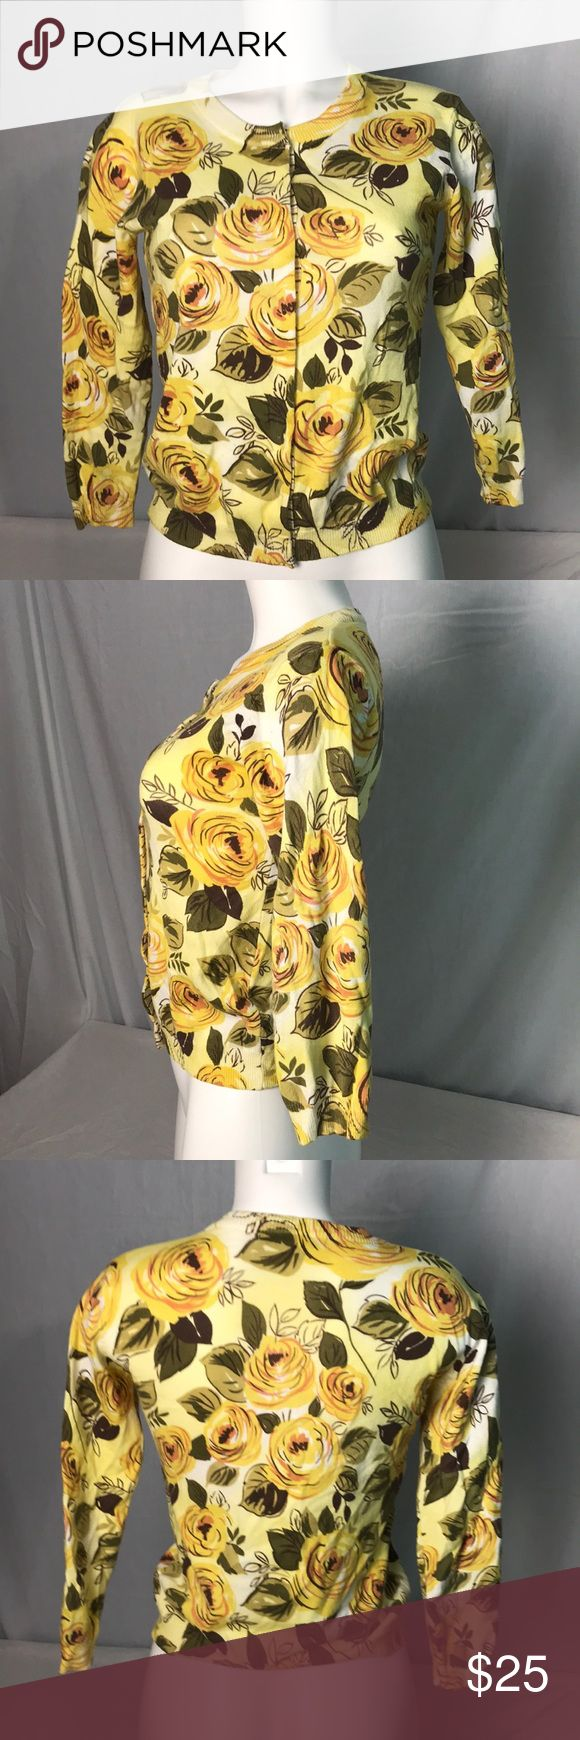 "CAbi 465 Yellow Floral Snap Front Jo Cardigan Chic yellow rose cardigan with various green leaves. Snap closures. Arm pit to arm pit across the front is 17"". Length from shoulder 22"". Sleeve length 18"". 80% cotton 20% spandex. CAbi Sweaters Cardigans"